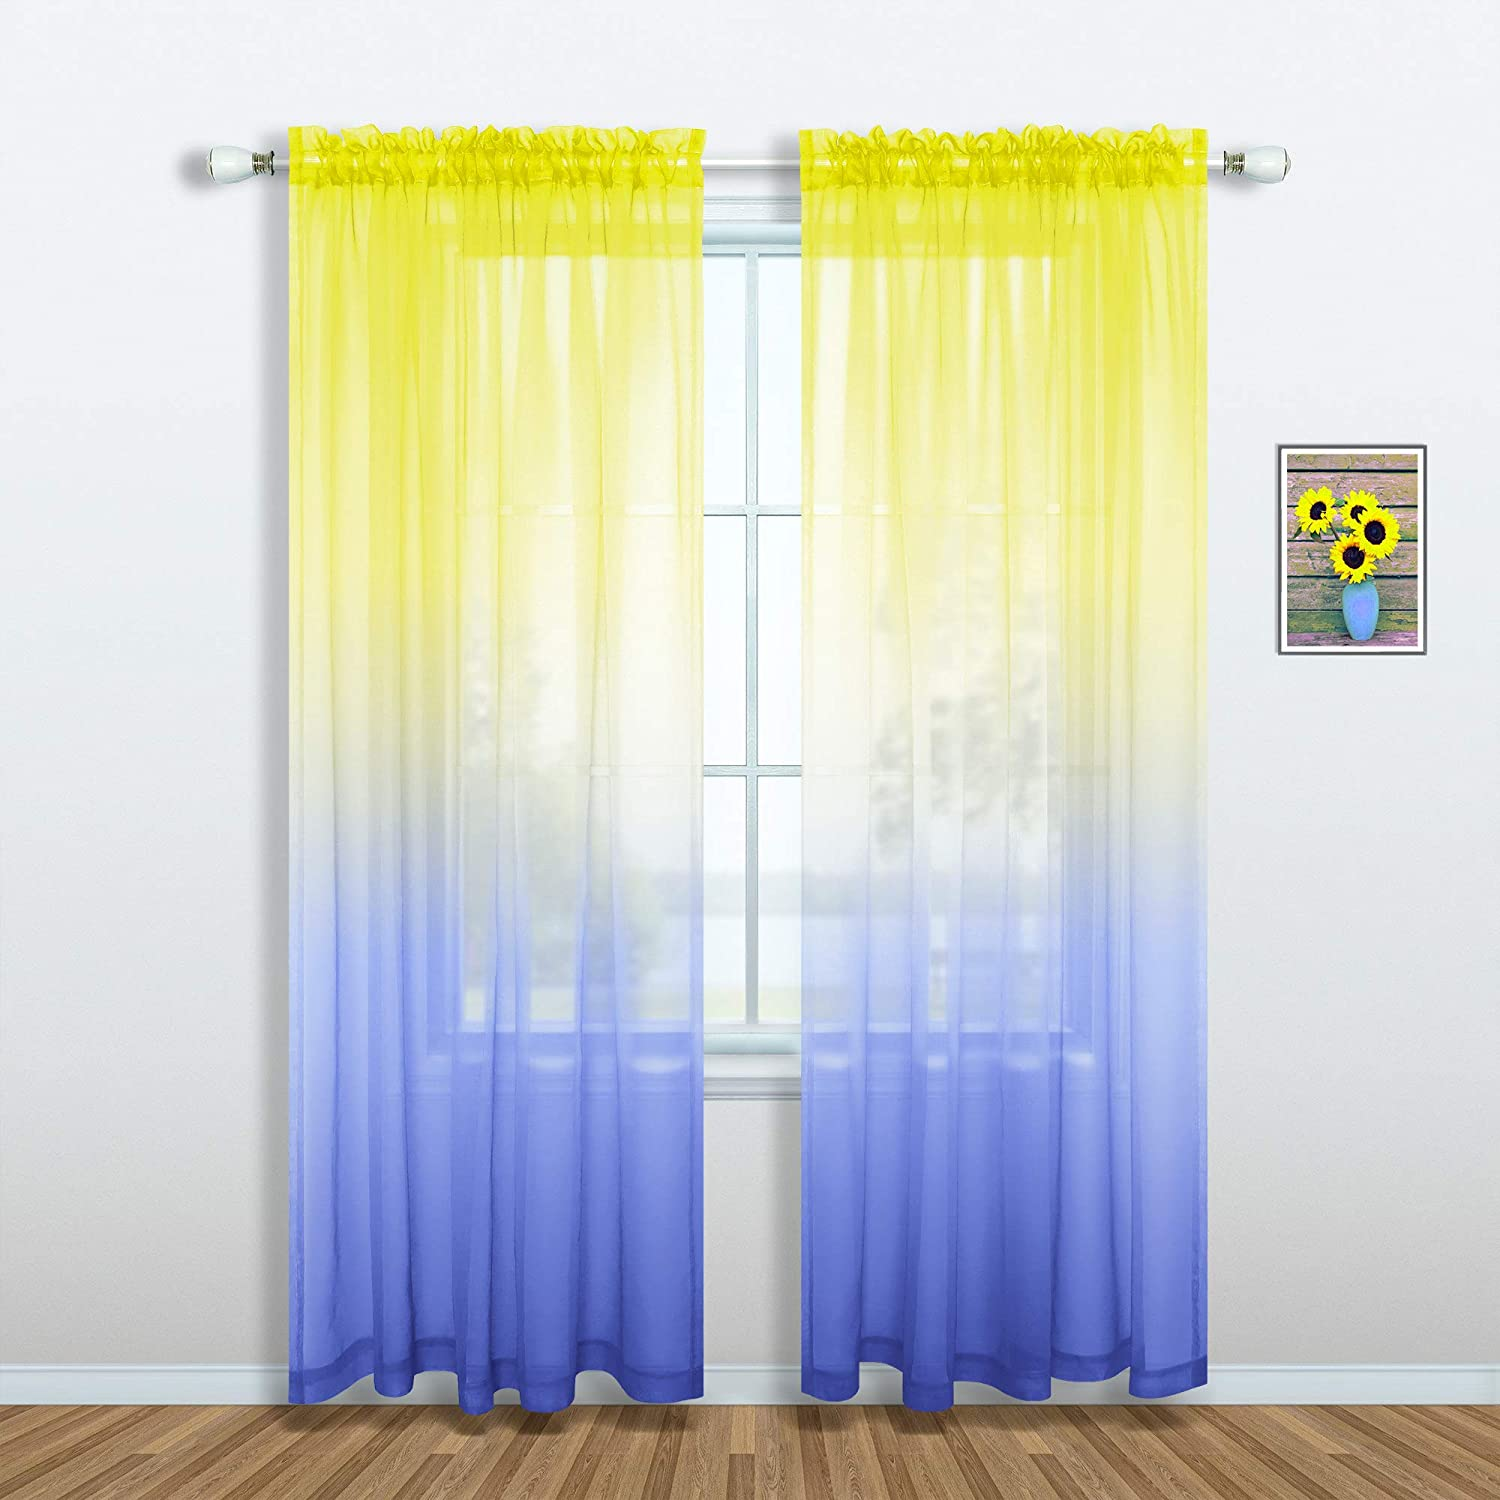 Blue and Yellow Curtains for Girls Bedroom Decor Set of 1 Sheer Panel Pocket Flower Ombre Gradient Yellow Sunflower Curtains for Living Room Dining Girls Room Teen Decorations 52 x 84 Inch Length